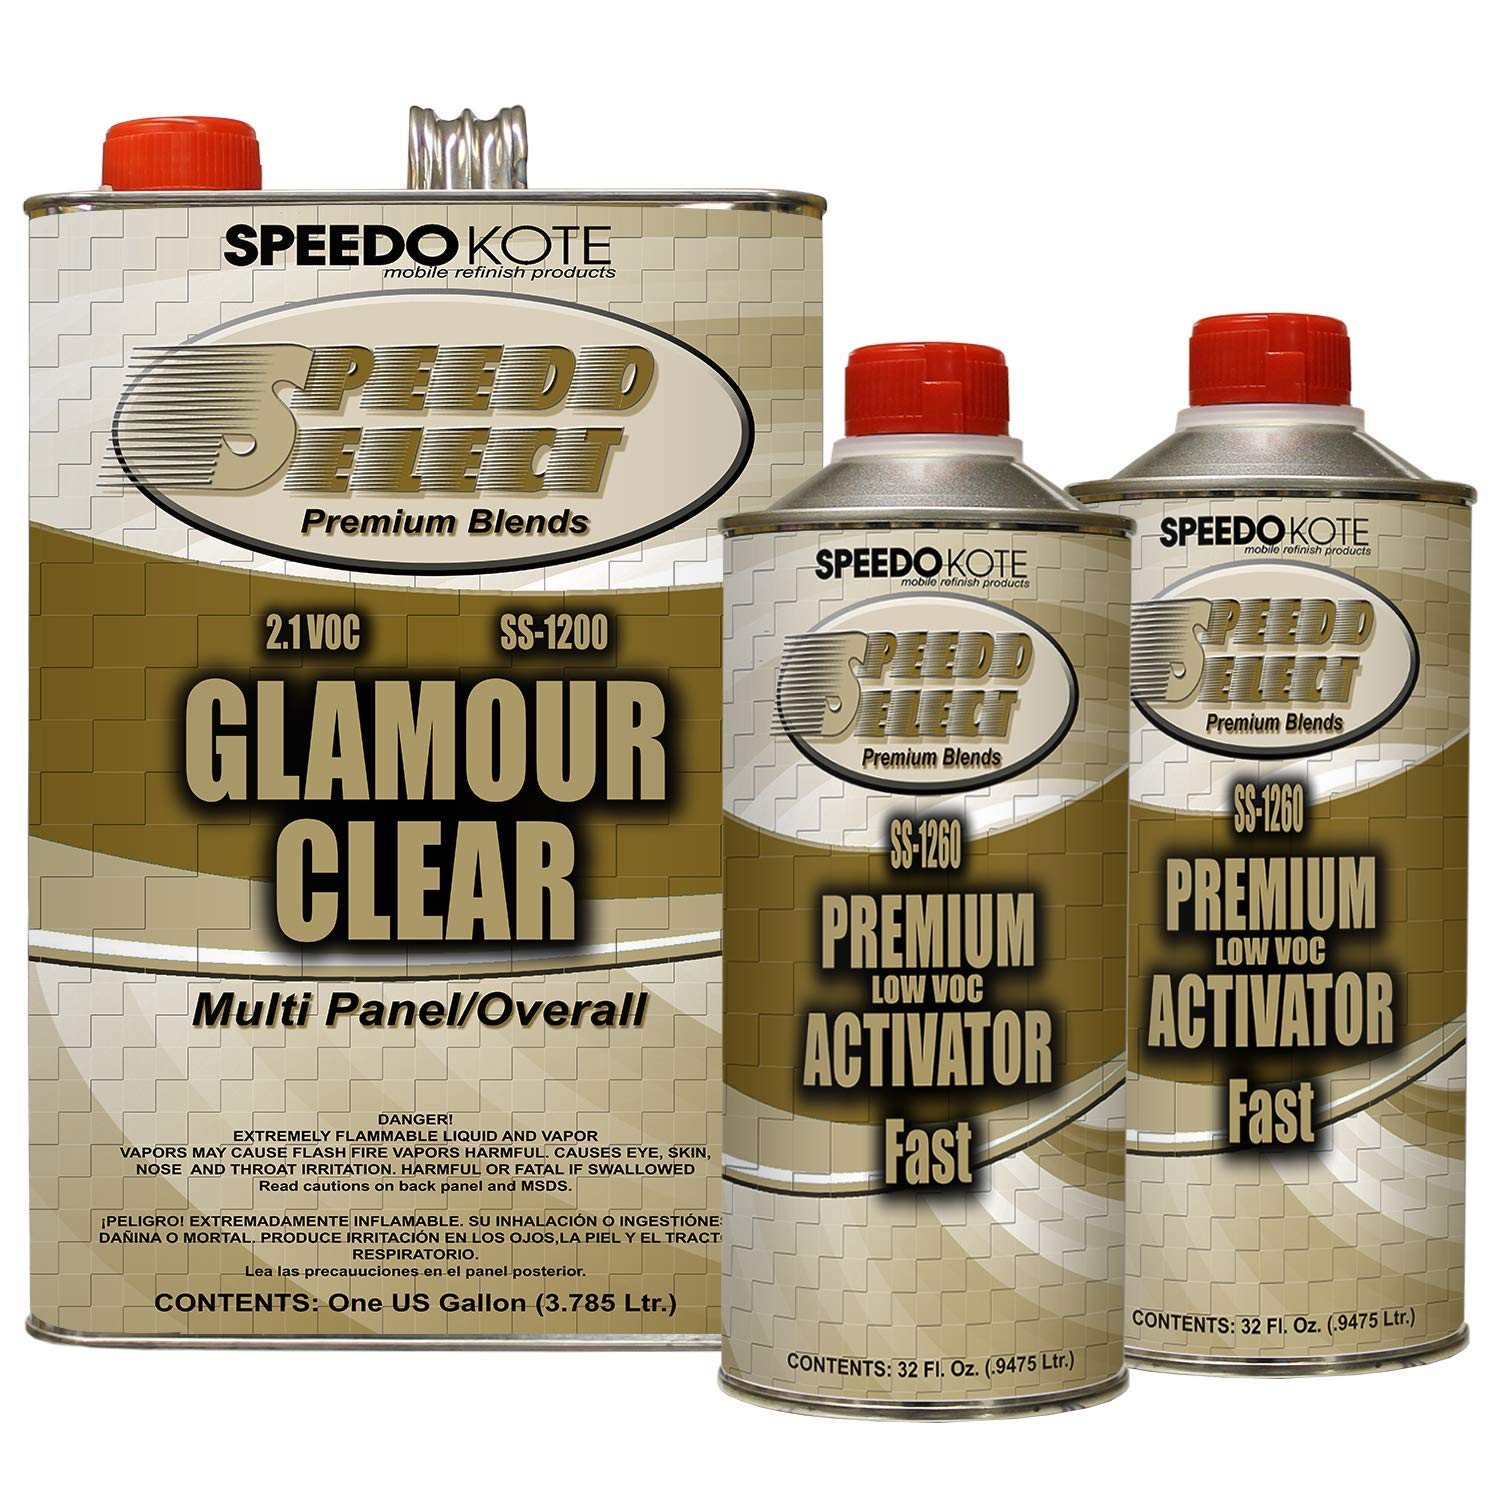 Speedokote SS-1200/60 - Ultra High Gloss with Superior DOI 2.1 voc Clear Coat, 2:1 mix 6 quarts Fast speed clearcoat Kit